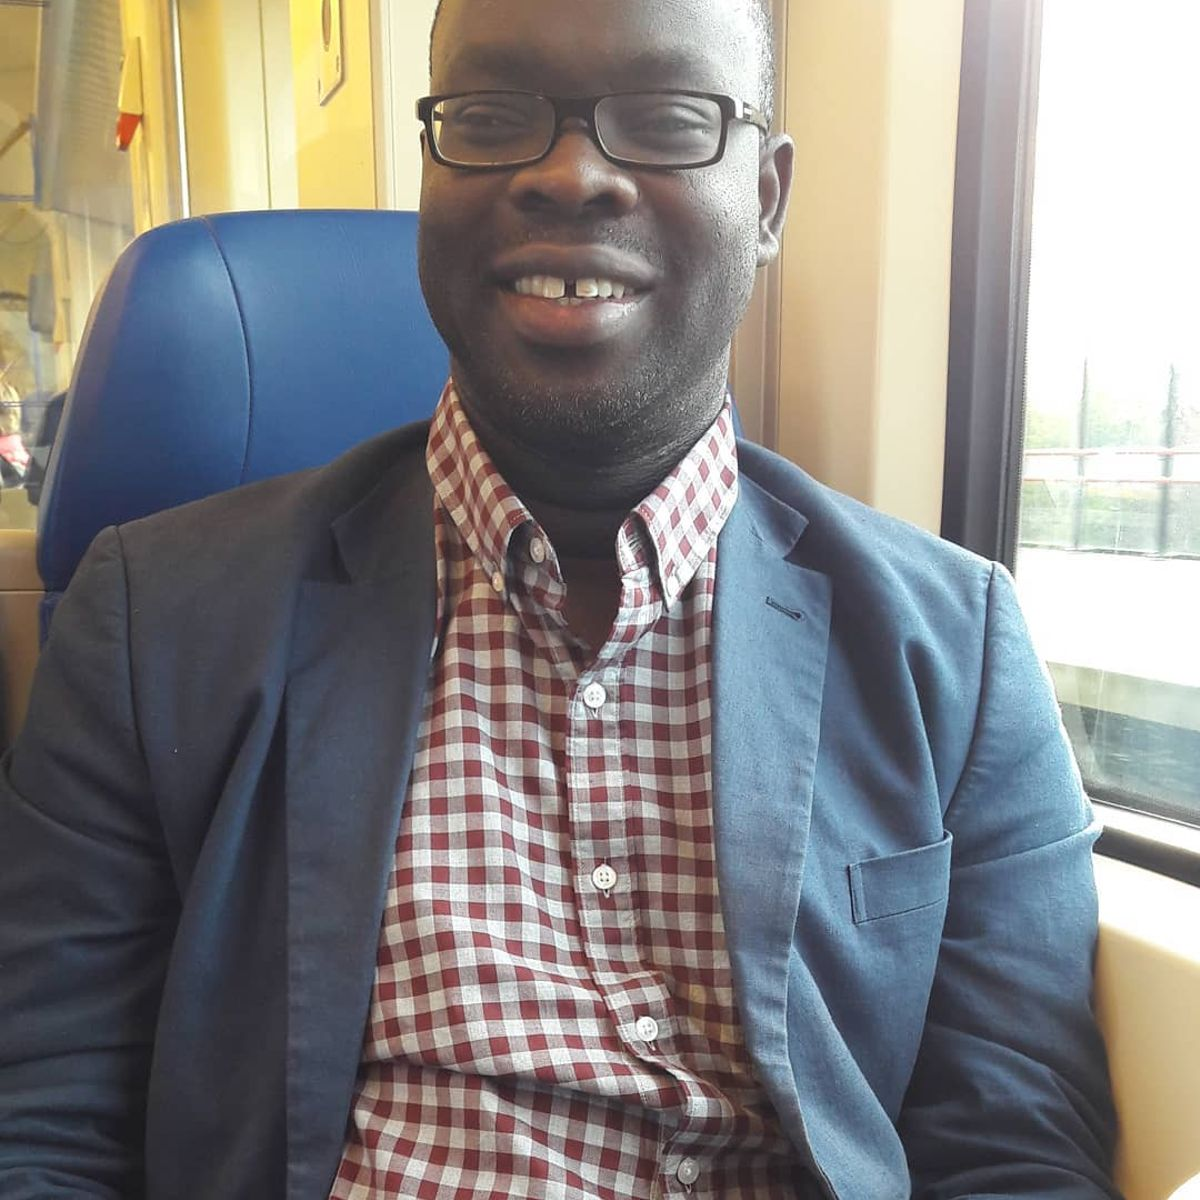 YOz6ge66s3ken okothhh - From a watchman to MP: Things you didn't know about Kibra MP Ken Okoth